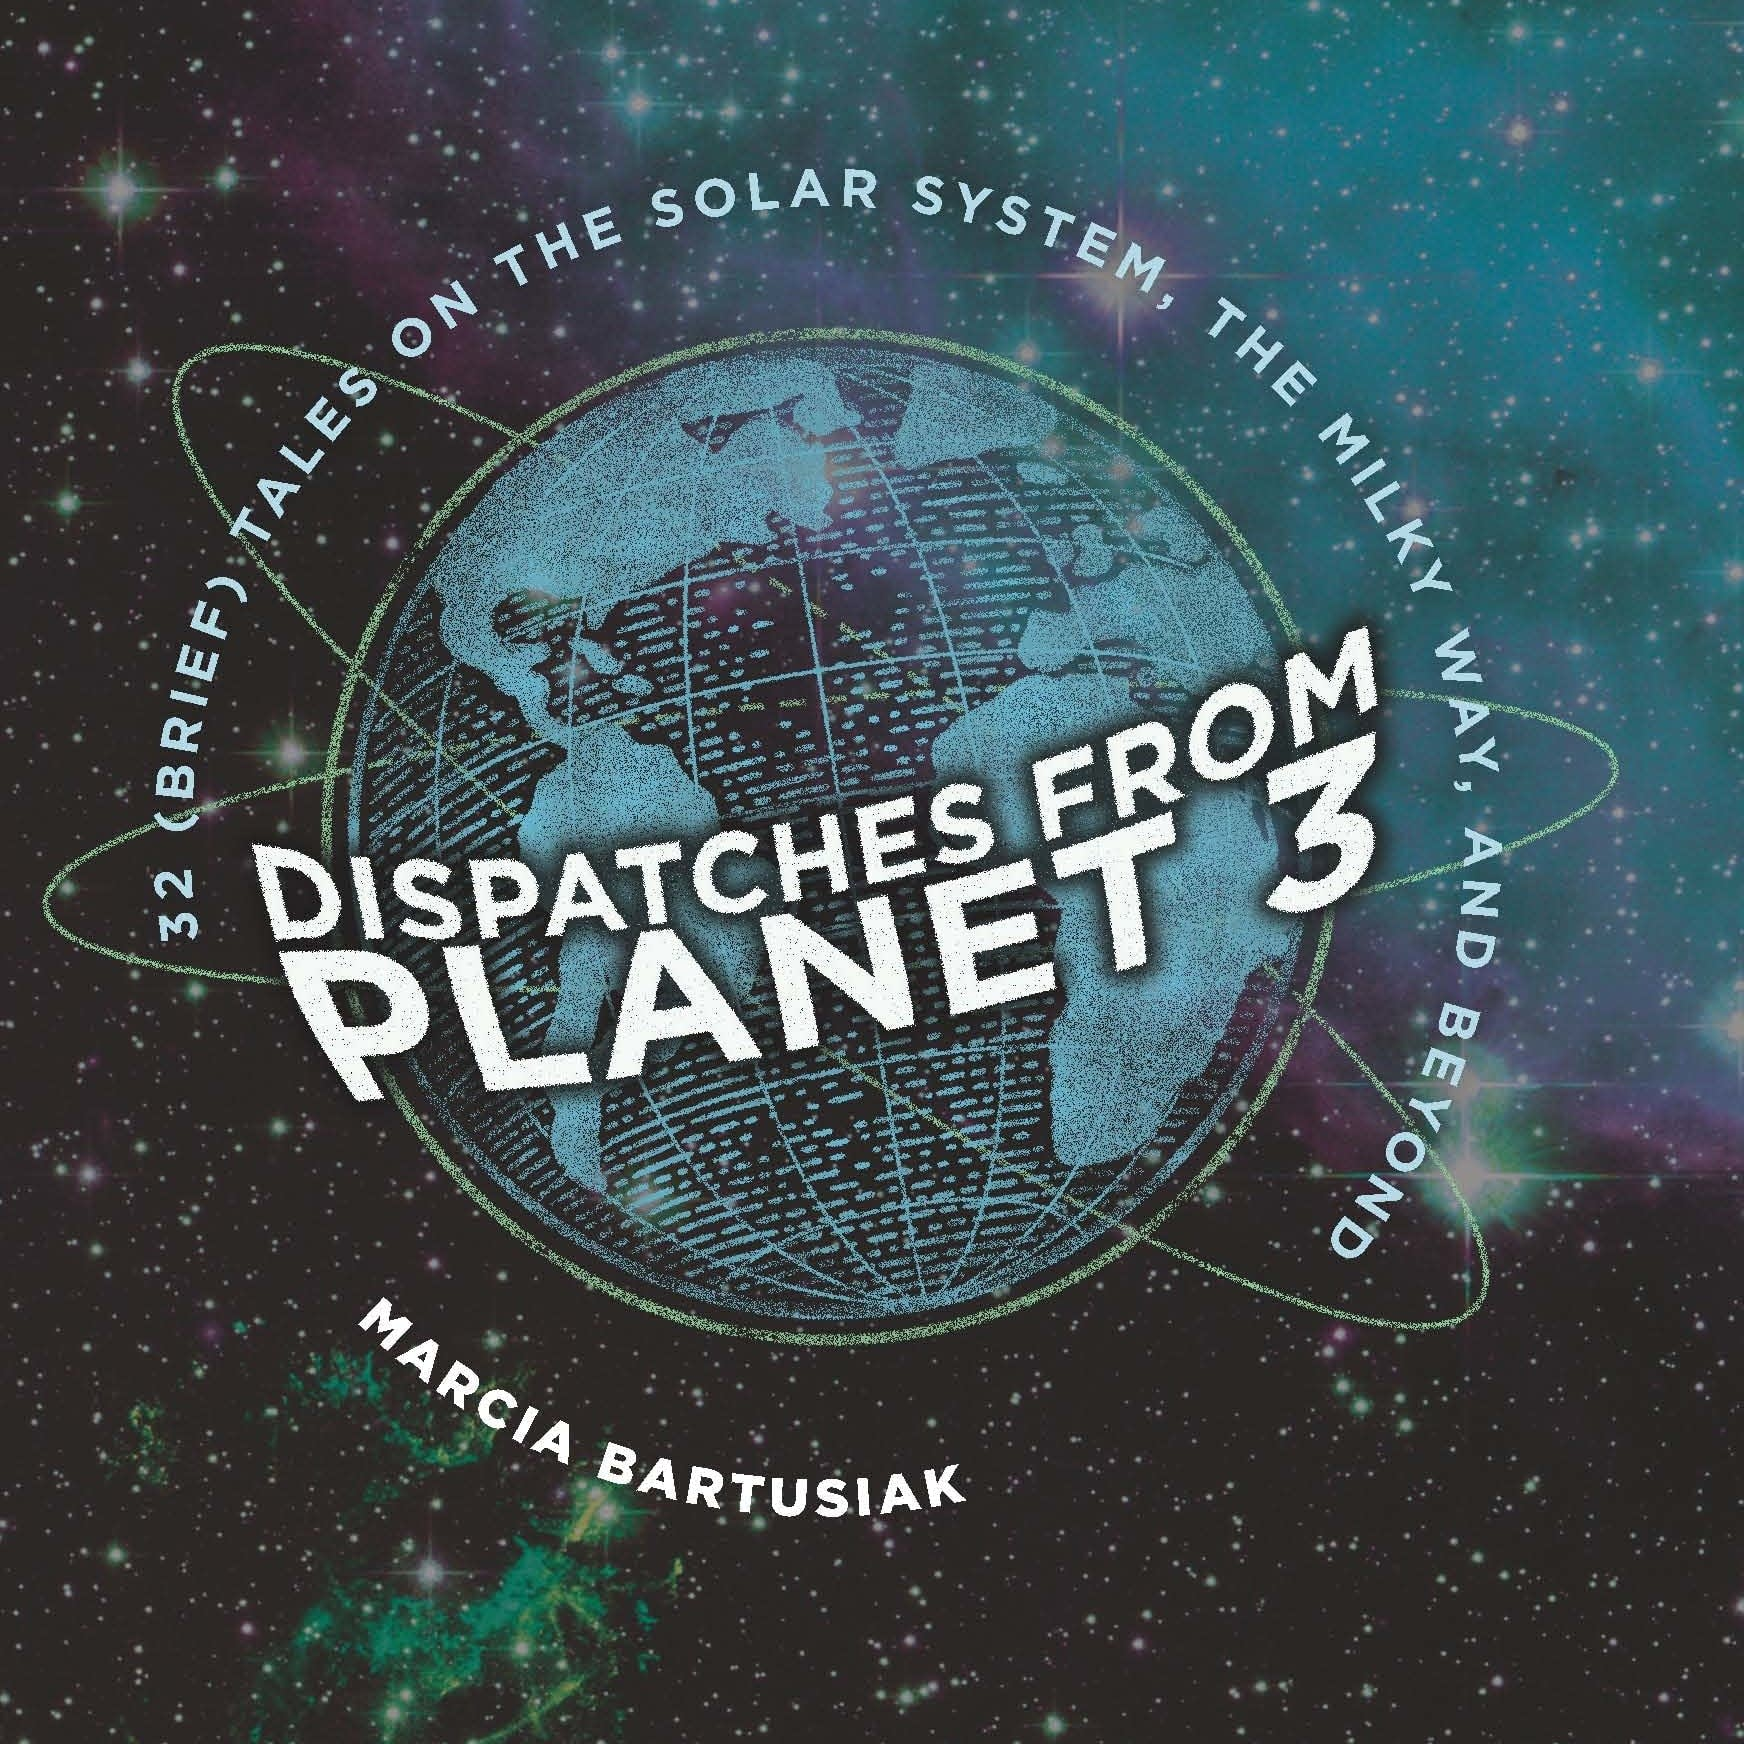 Book jacket from Dispatches from Planet 3